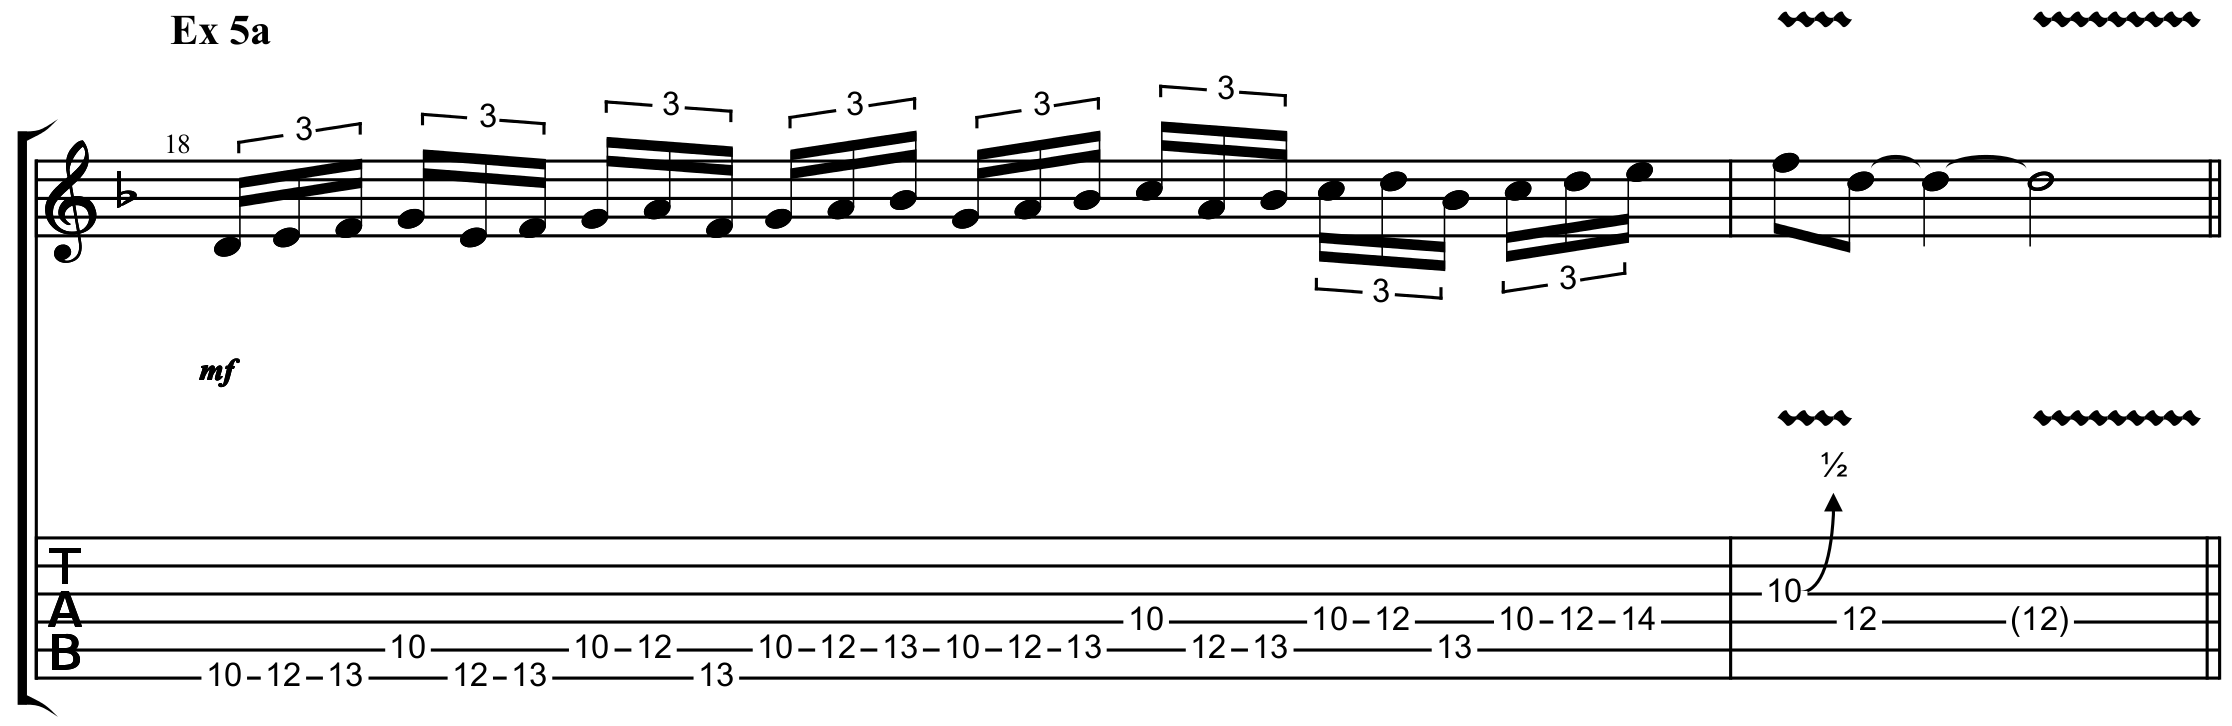 a four note pattern over a sextuplet rhythm scale run